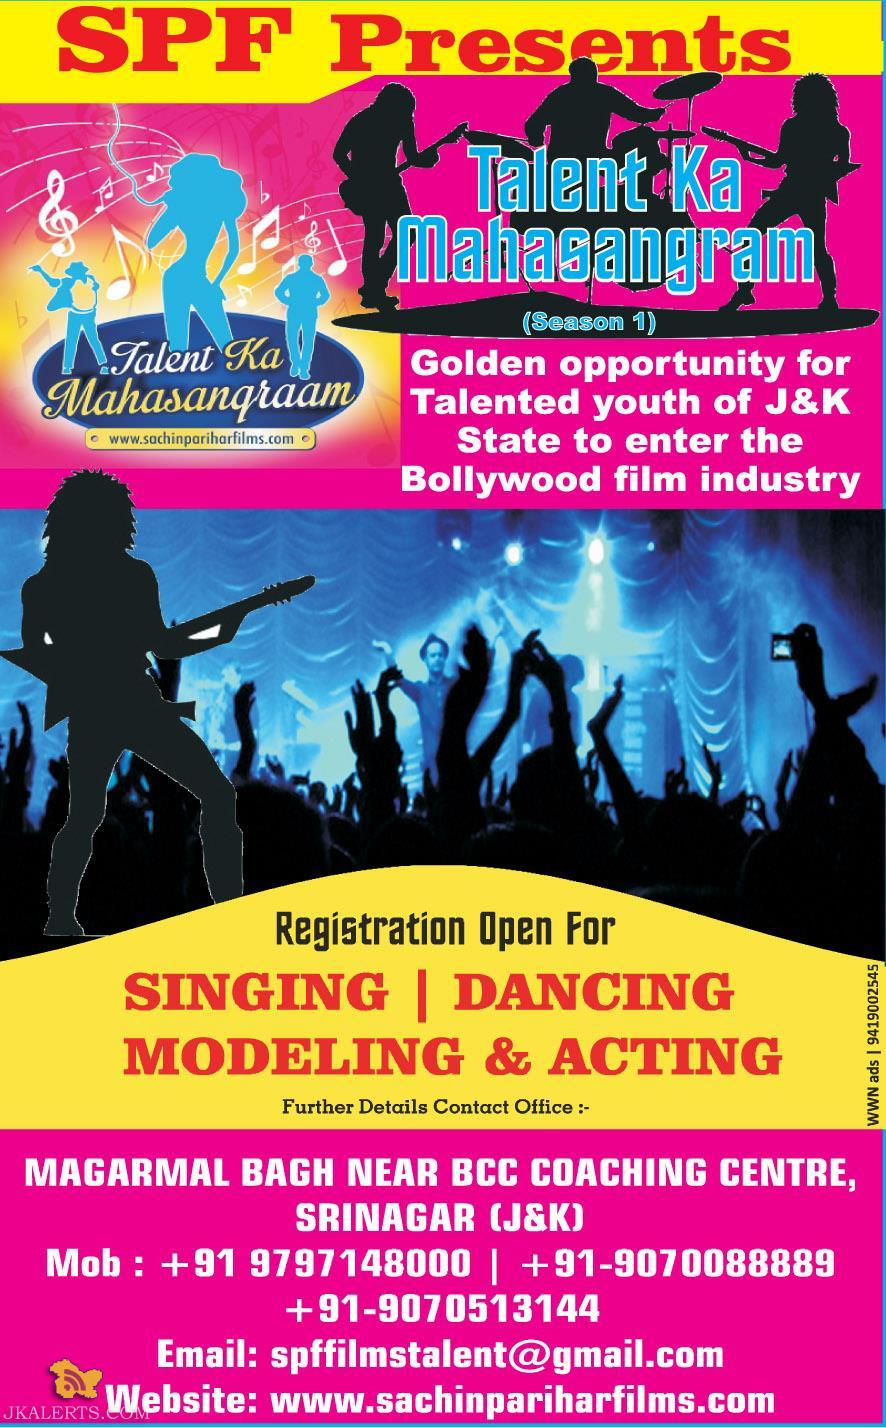 Talent Ka Maha Sangram SINGING, DANCING, MODELING & ACTING COMPETITION